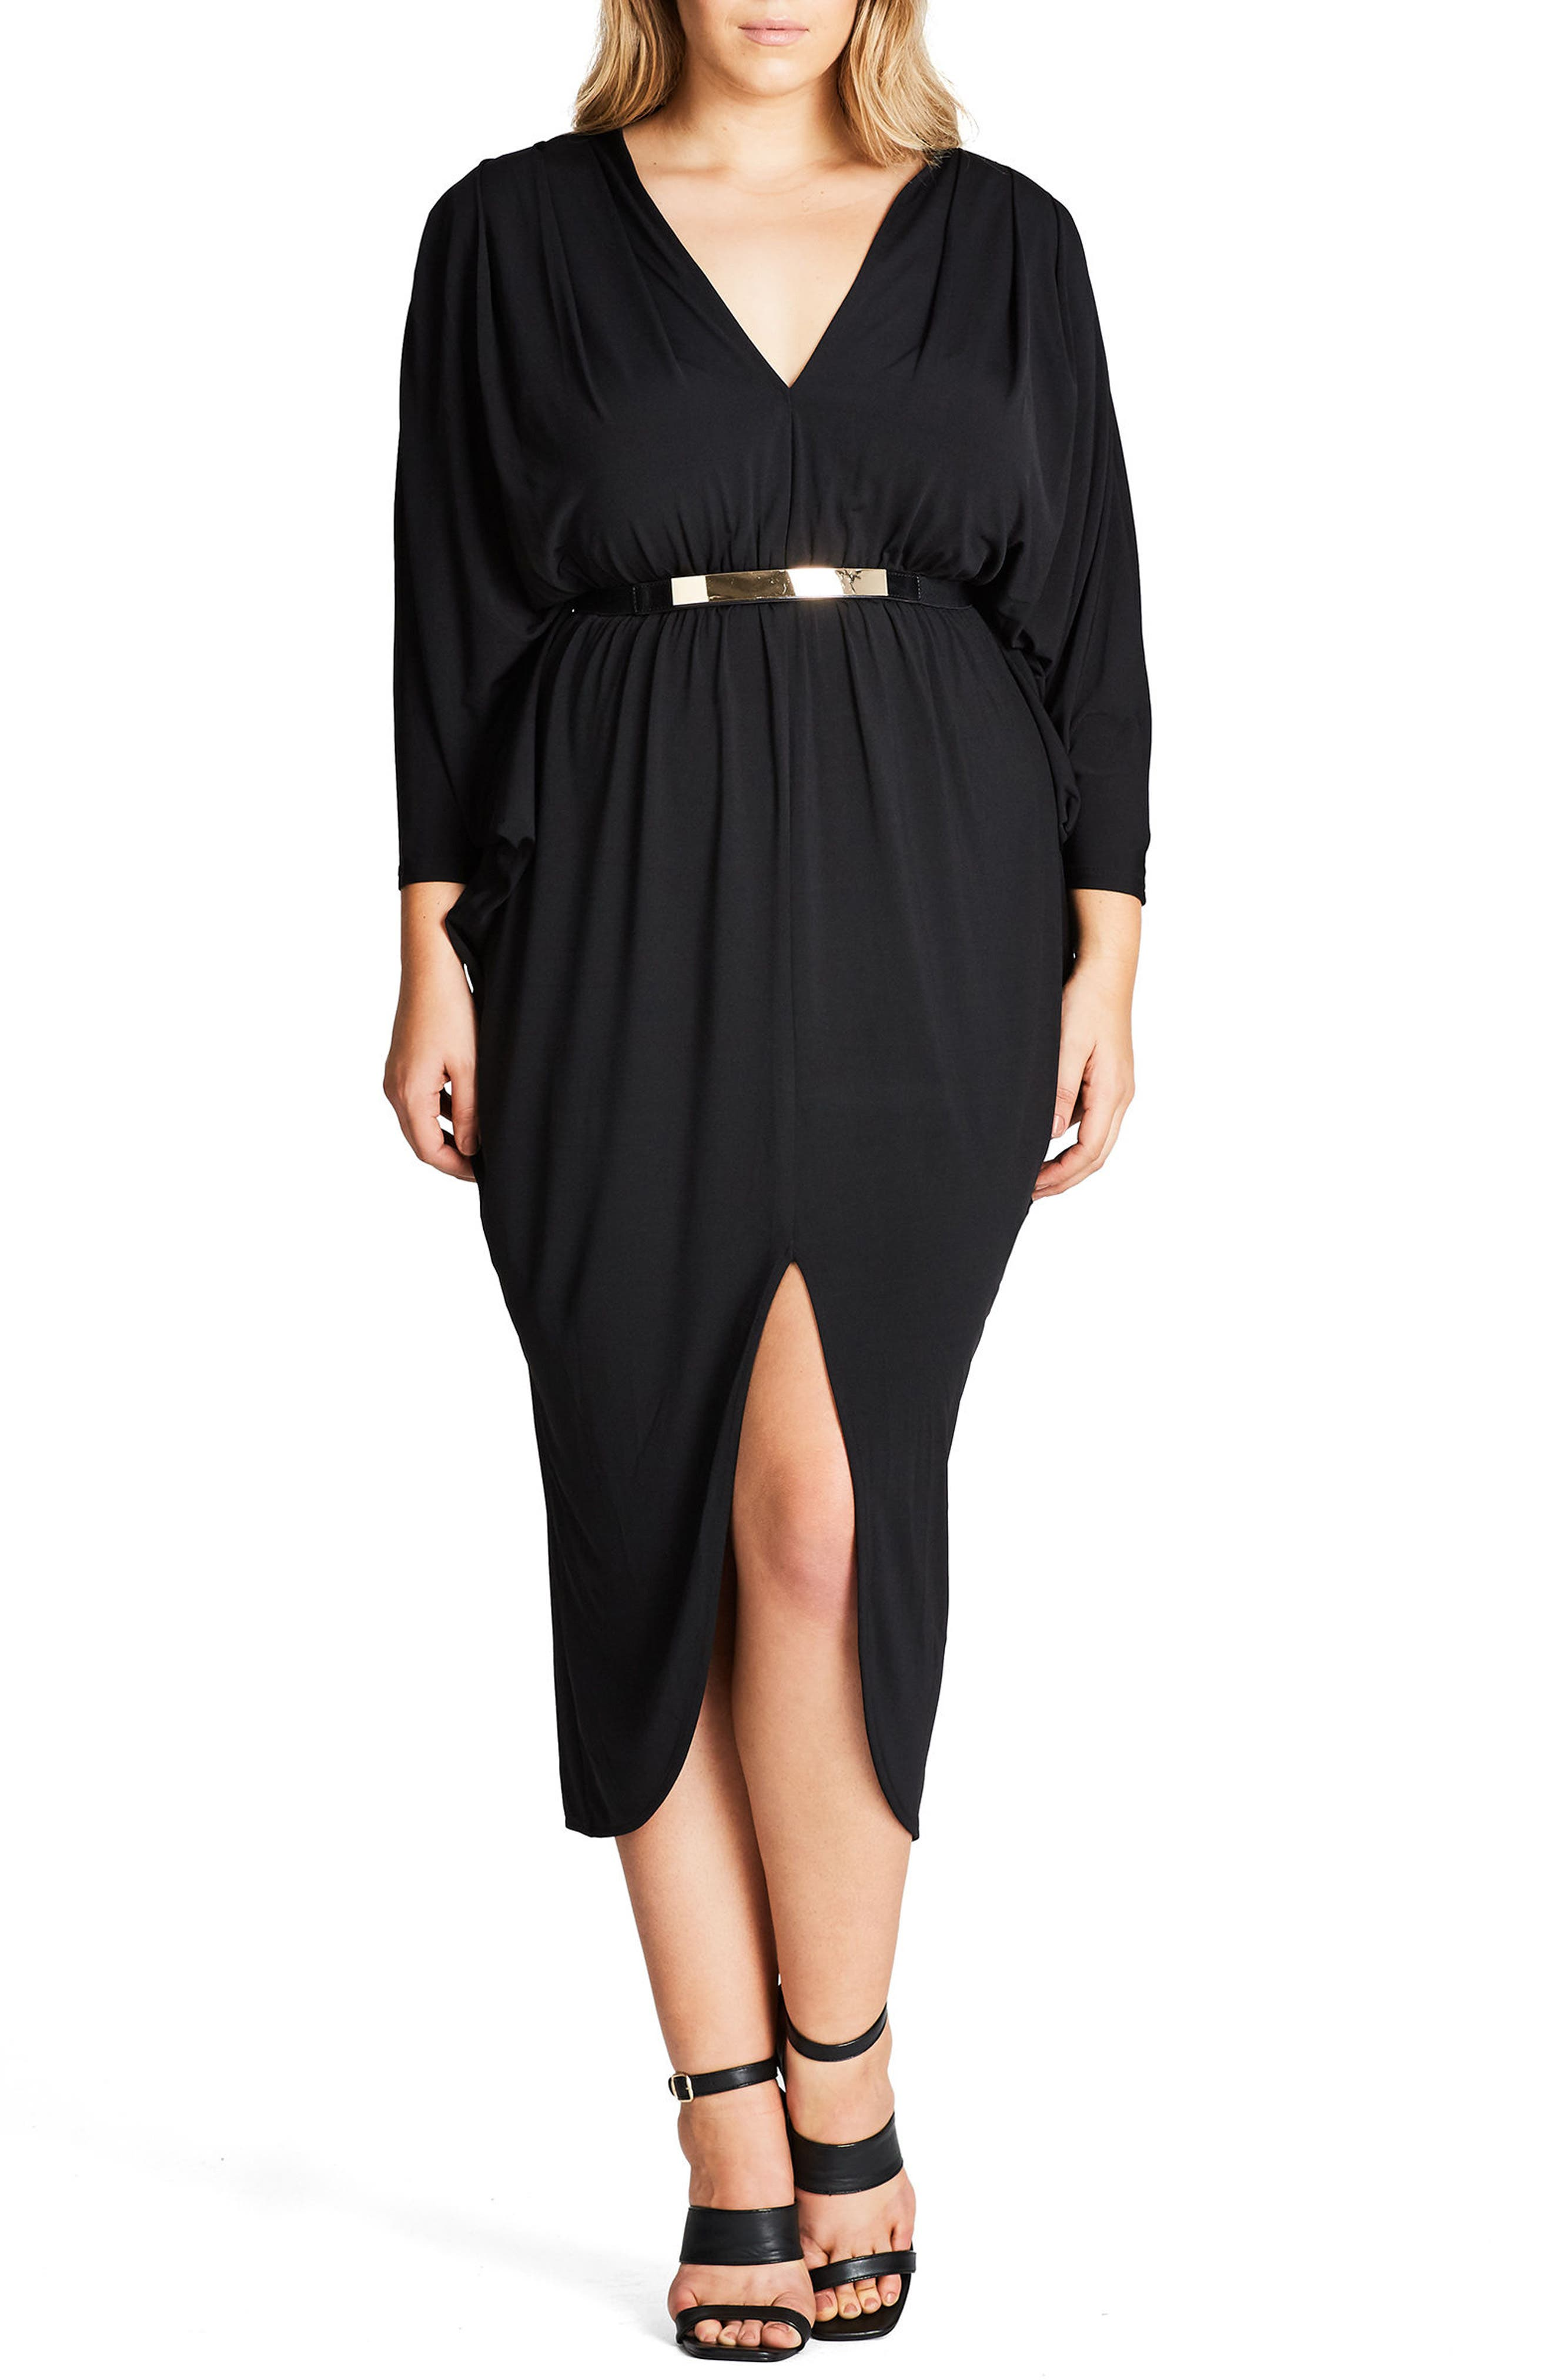 Alternate Image 1 Selected - City Chic Va Va Voom Belted Maxi Dress (Plus Size)